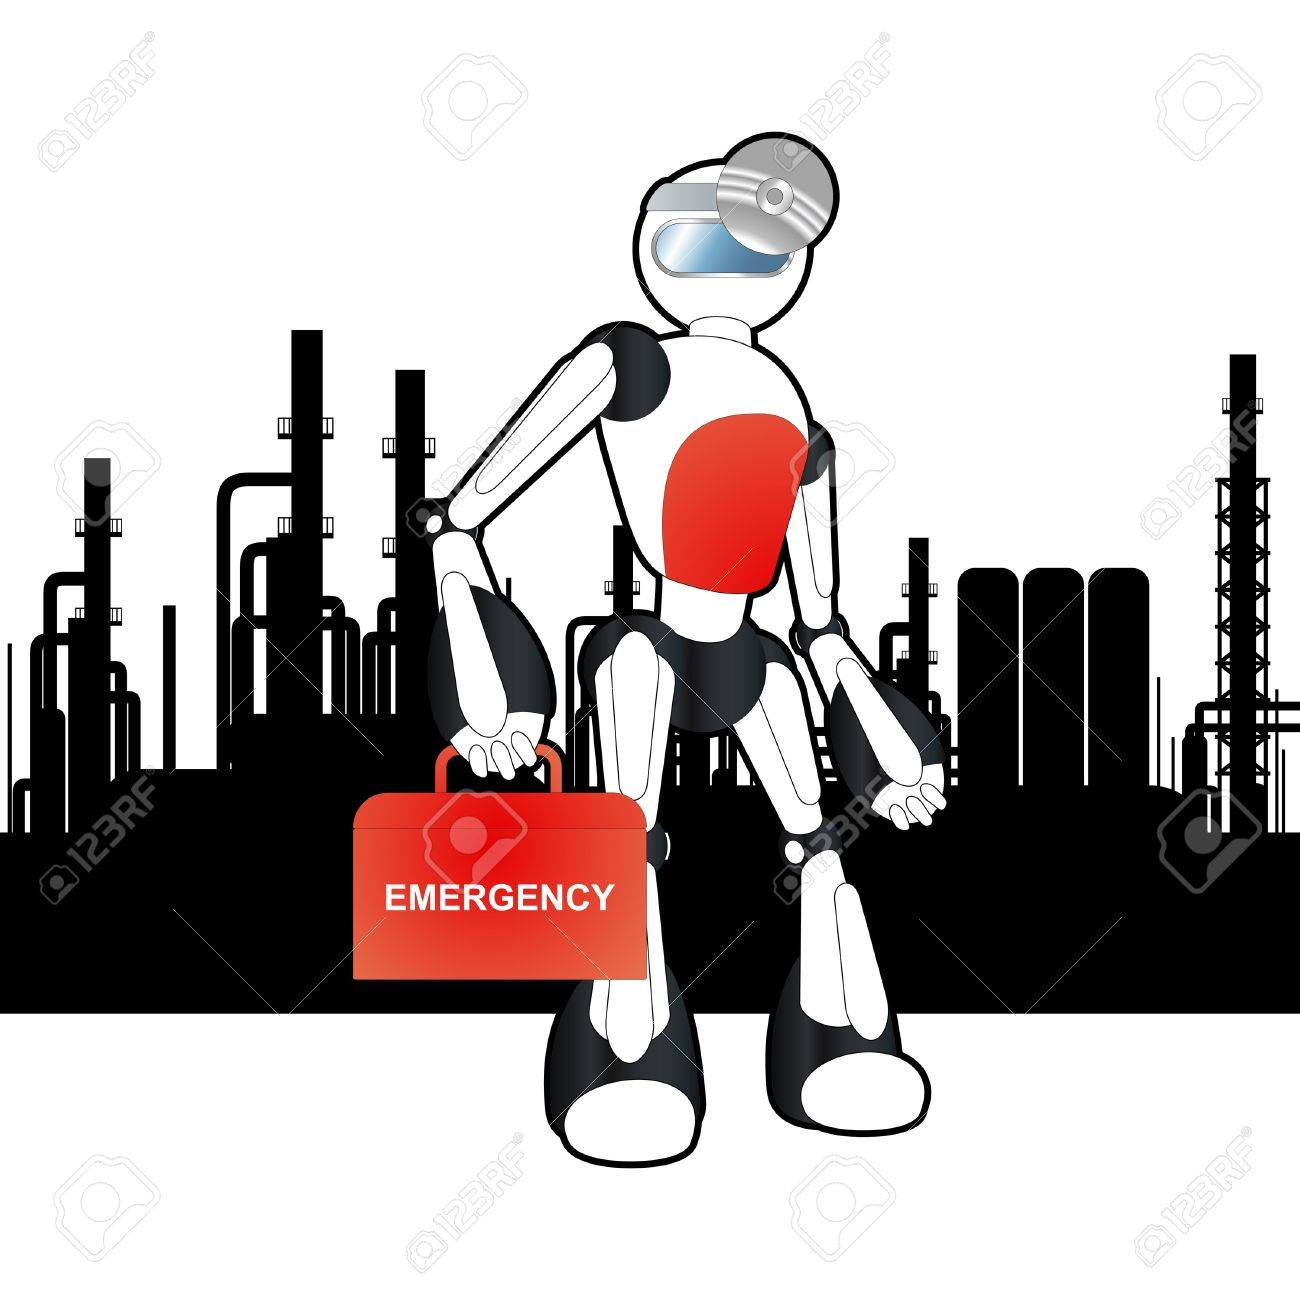 Animated Medical Robot Doctor Illustration Royalty Free Cliparts ...